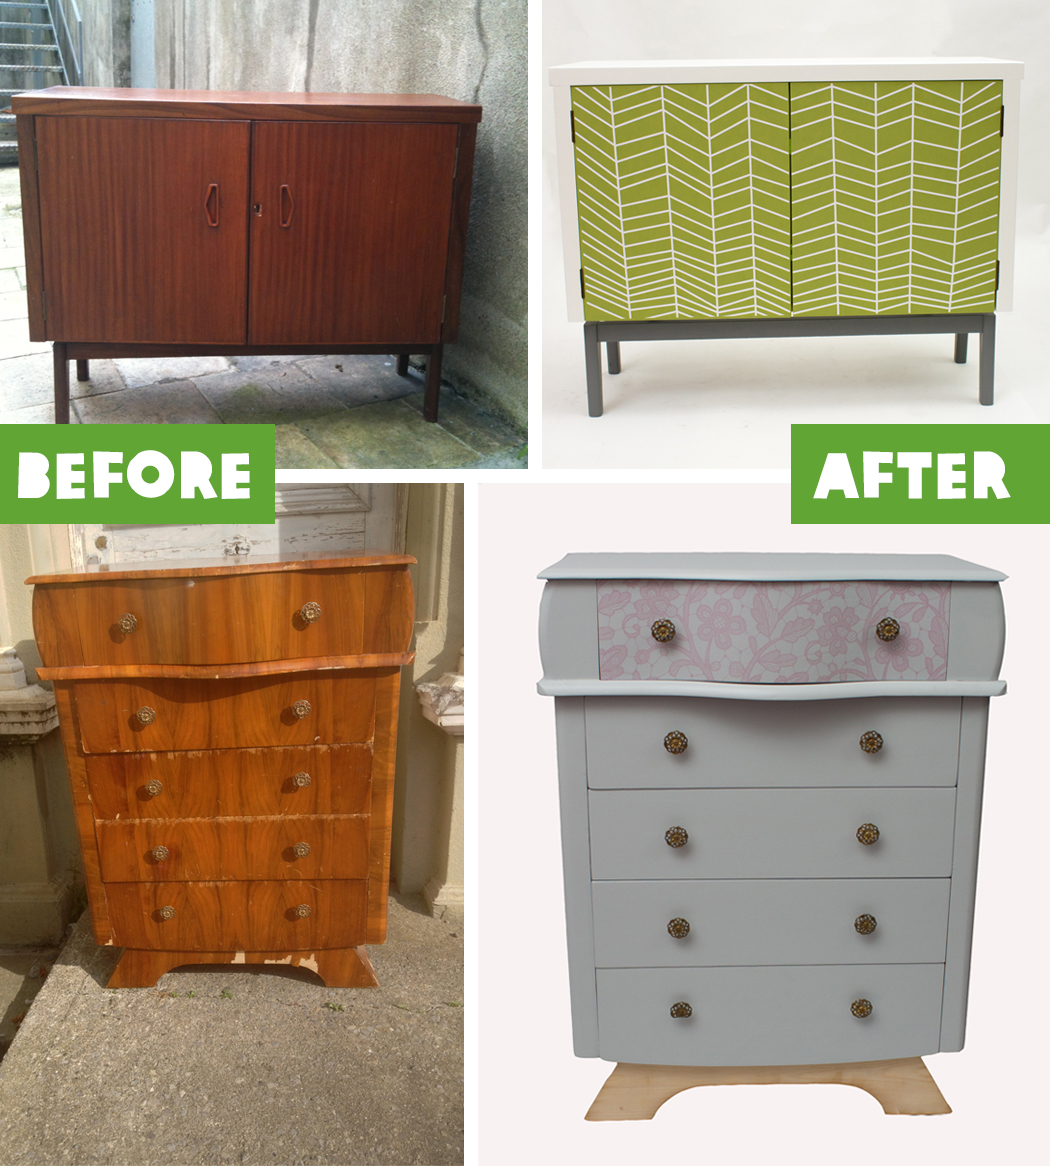 Upcycling projects from oxfam home - Upcycling ideas for furniture ...